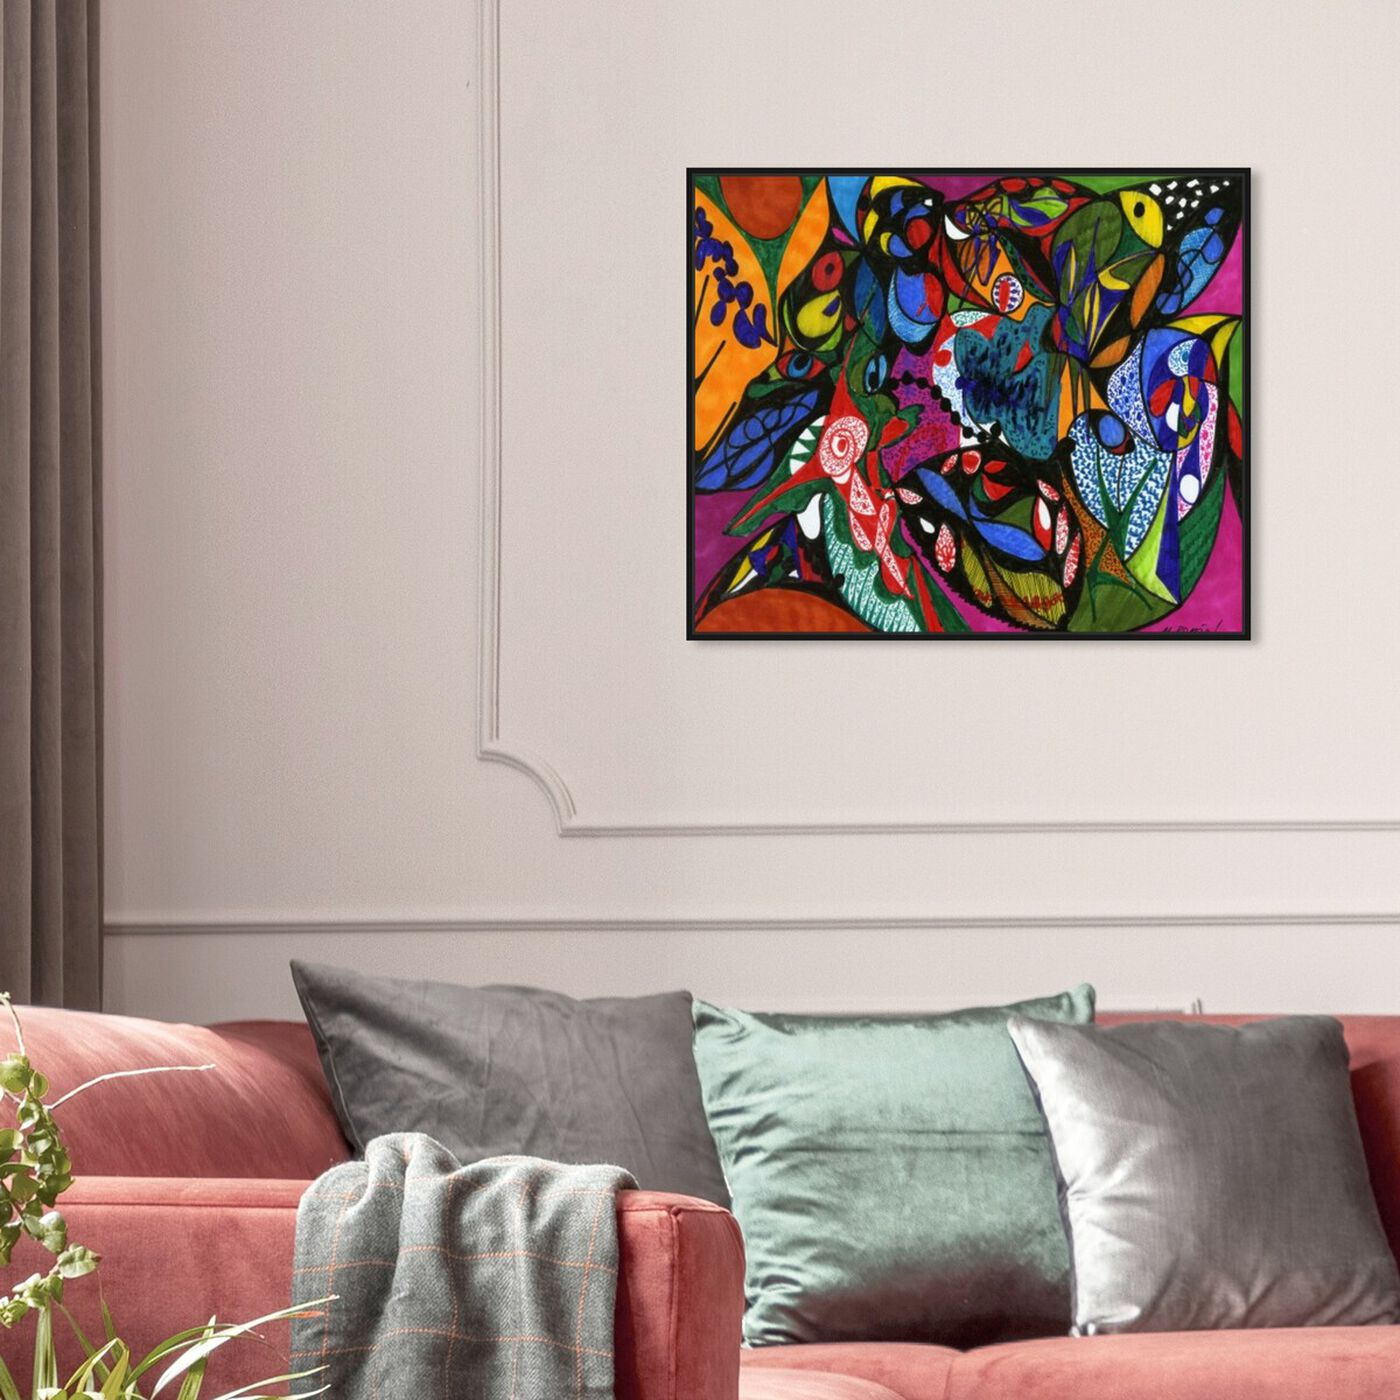 Hanging view of Harmonious featuring abstract and shapes art.